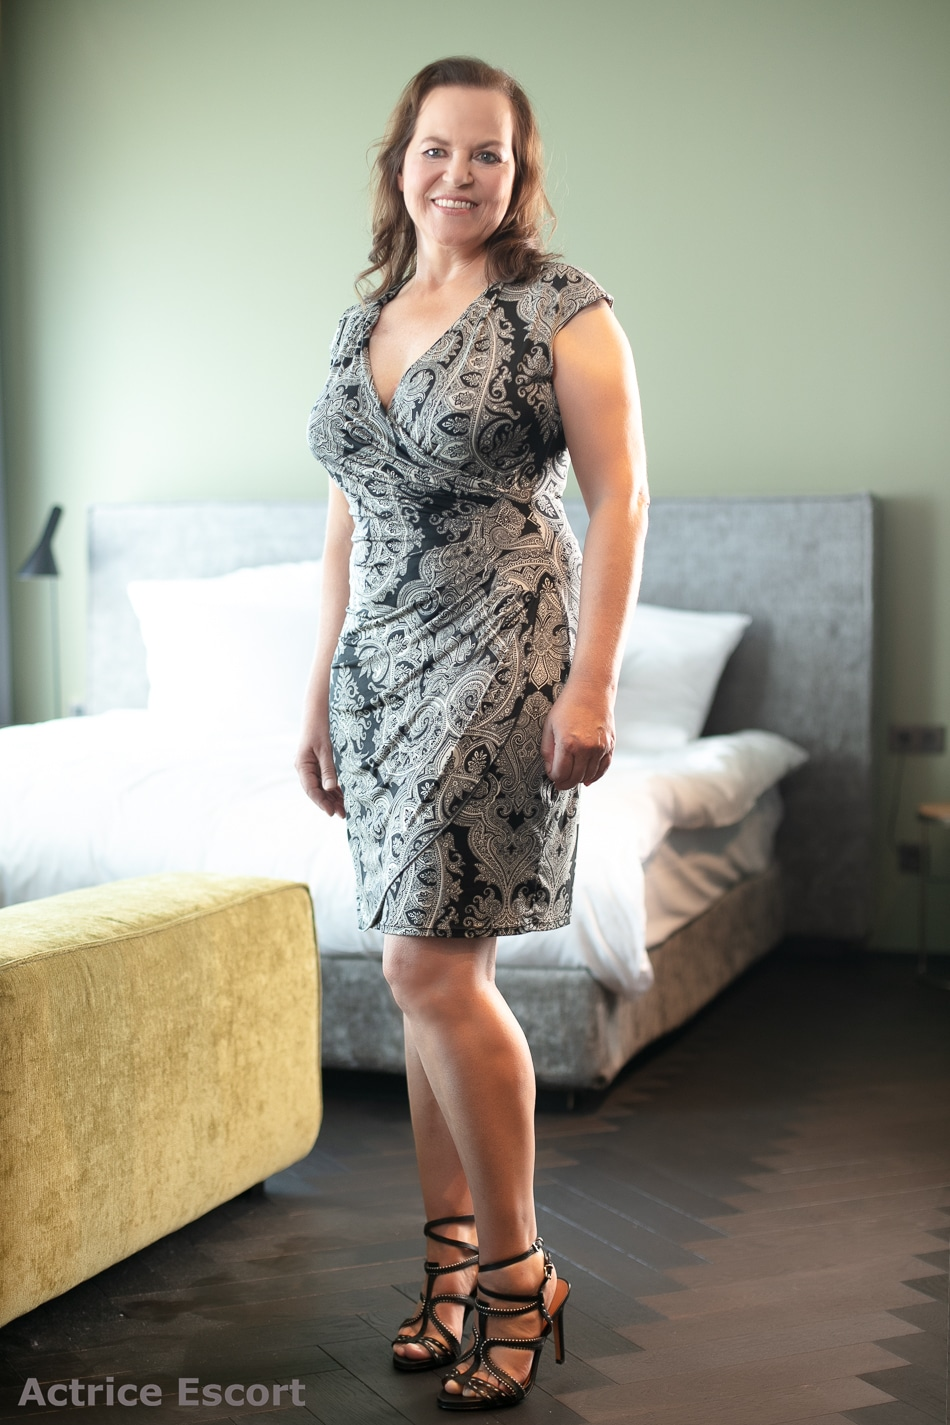 Bettina Escortservice Duesseldorf(5)